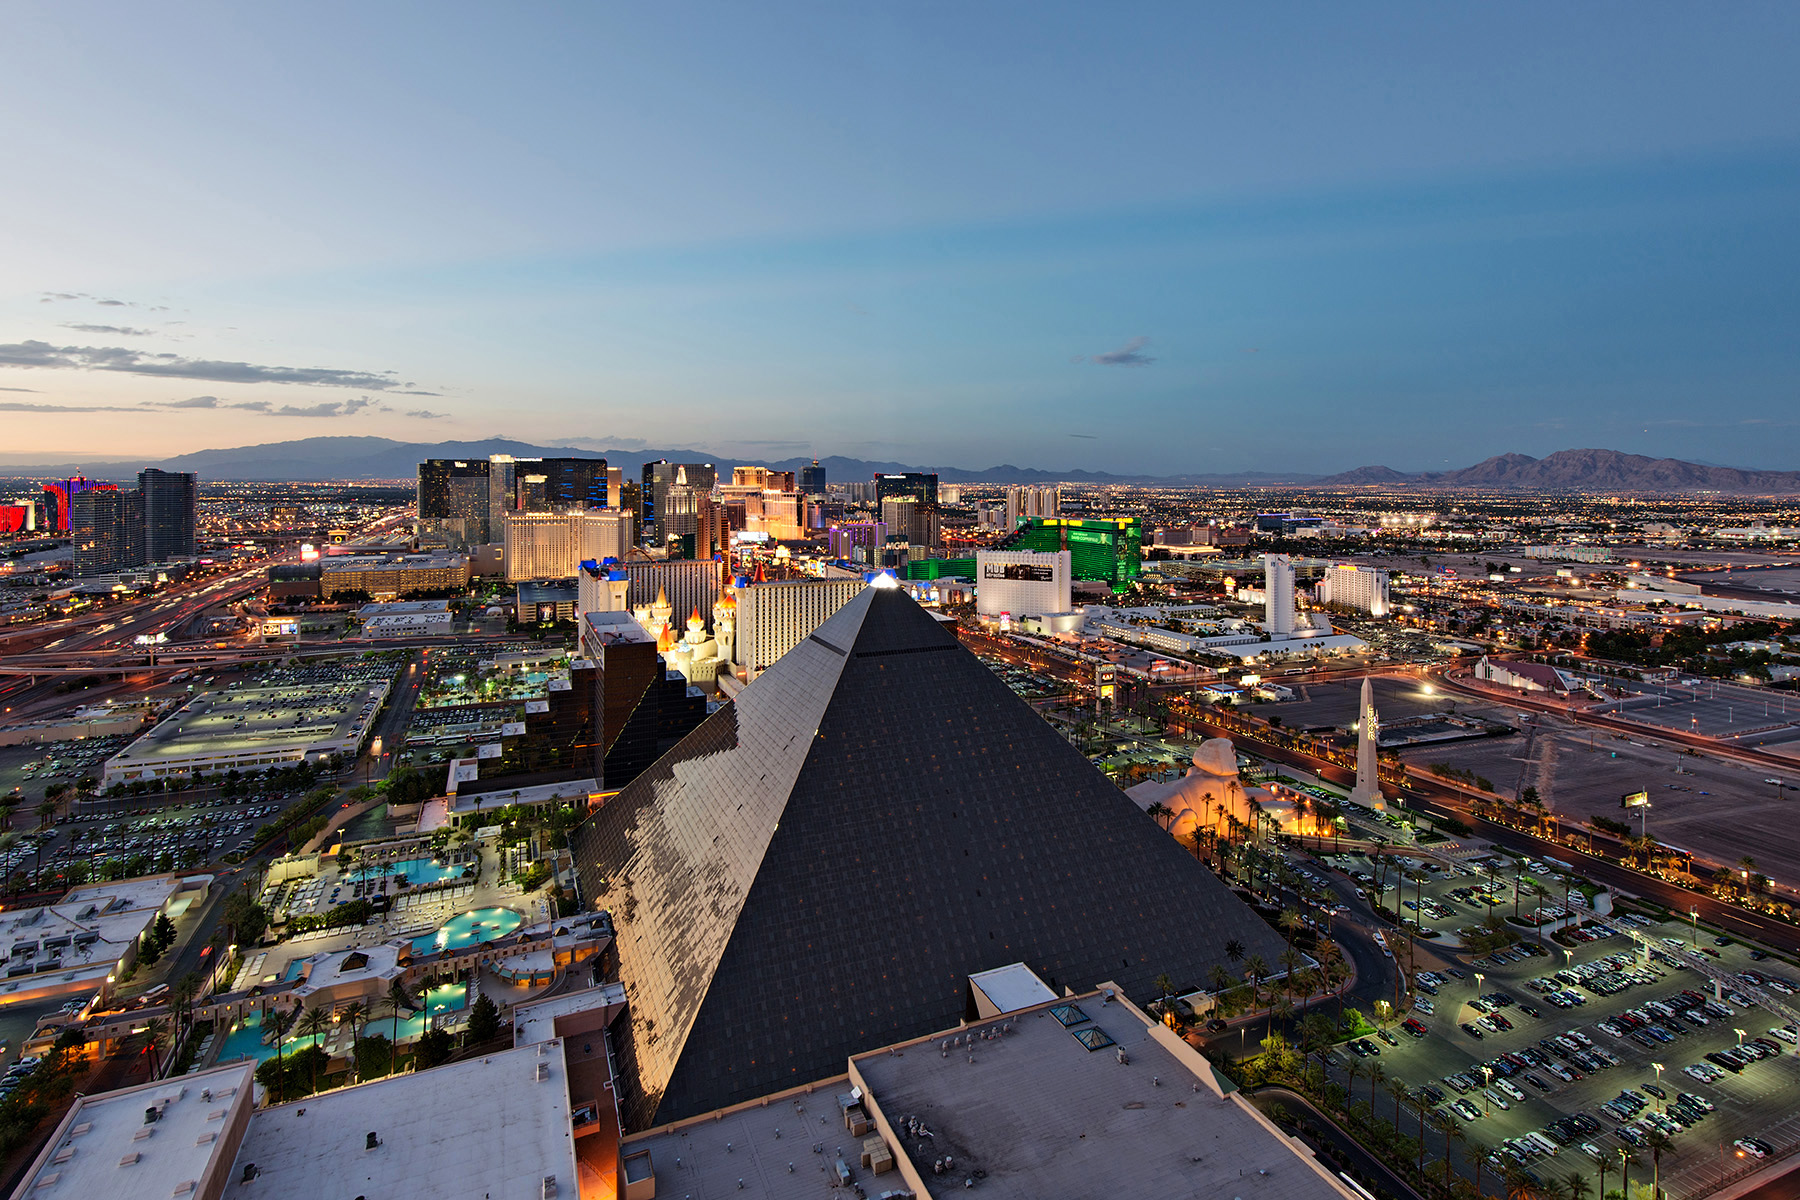 Las Vegas Skyline and the Strip at dusk viewed from THEHotel MiX Lounge terrace